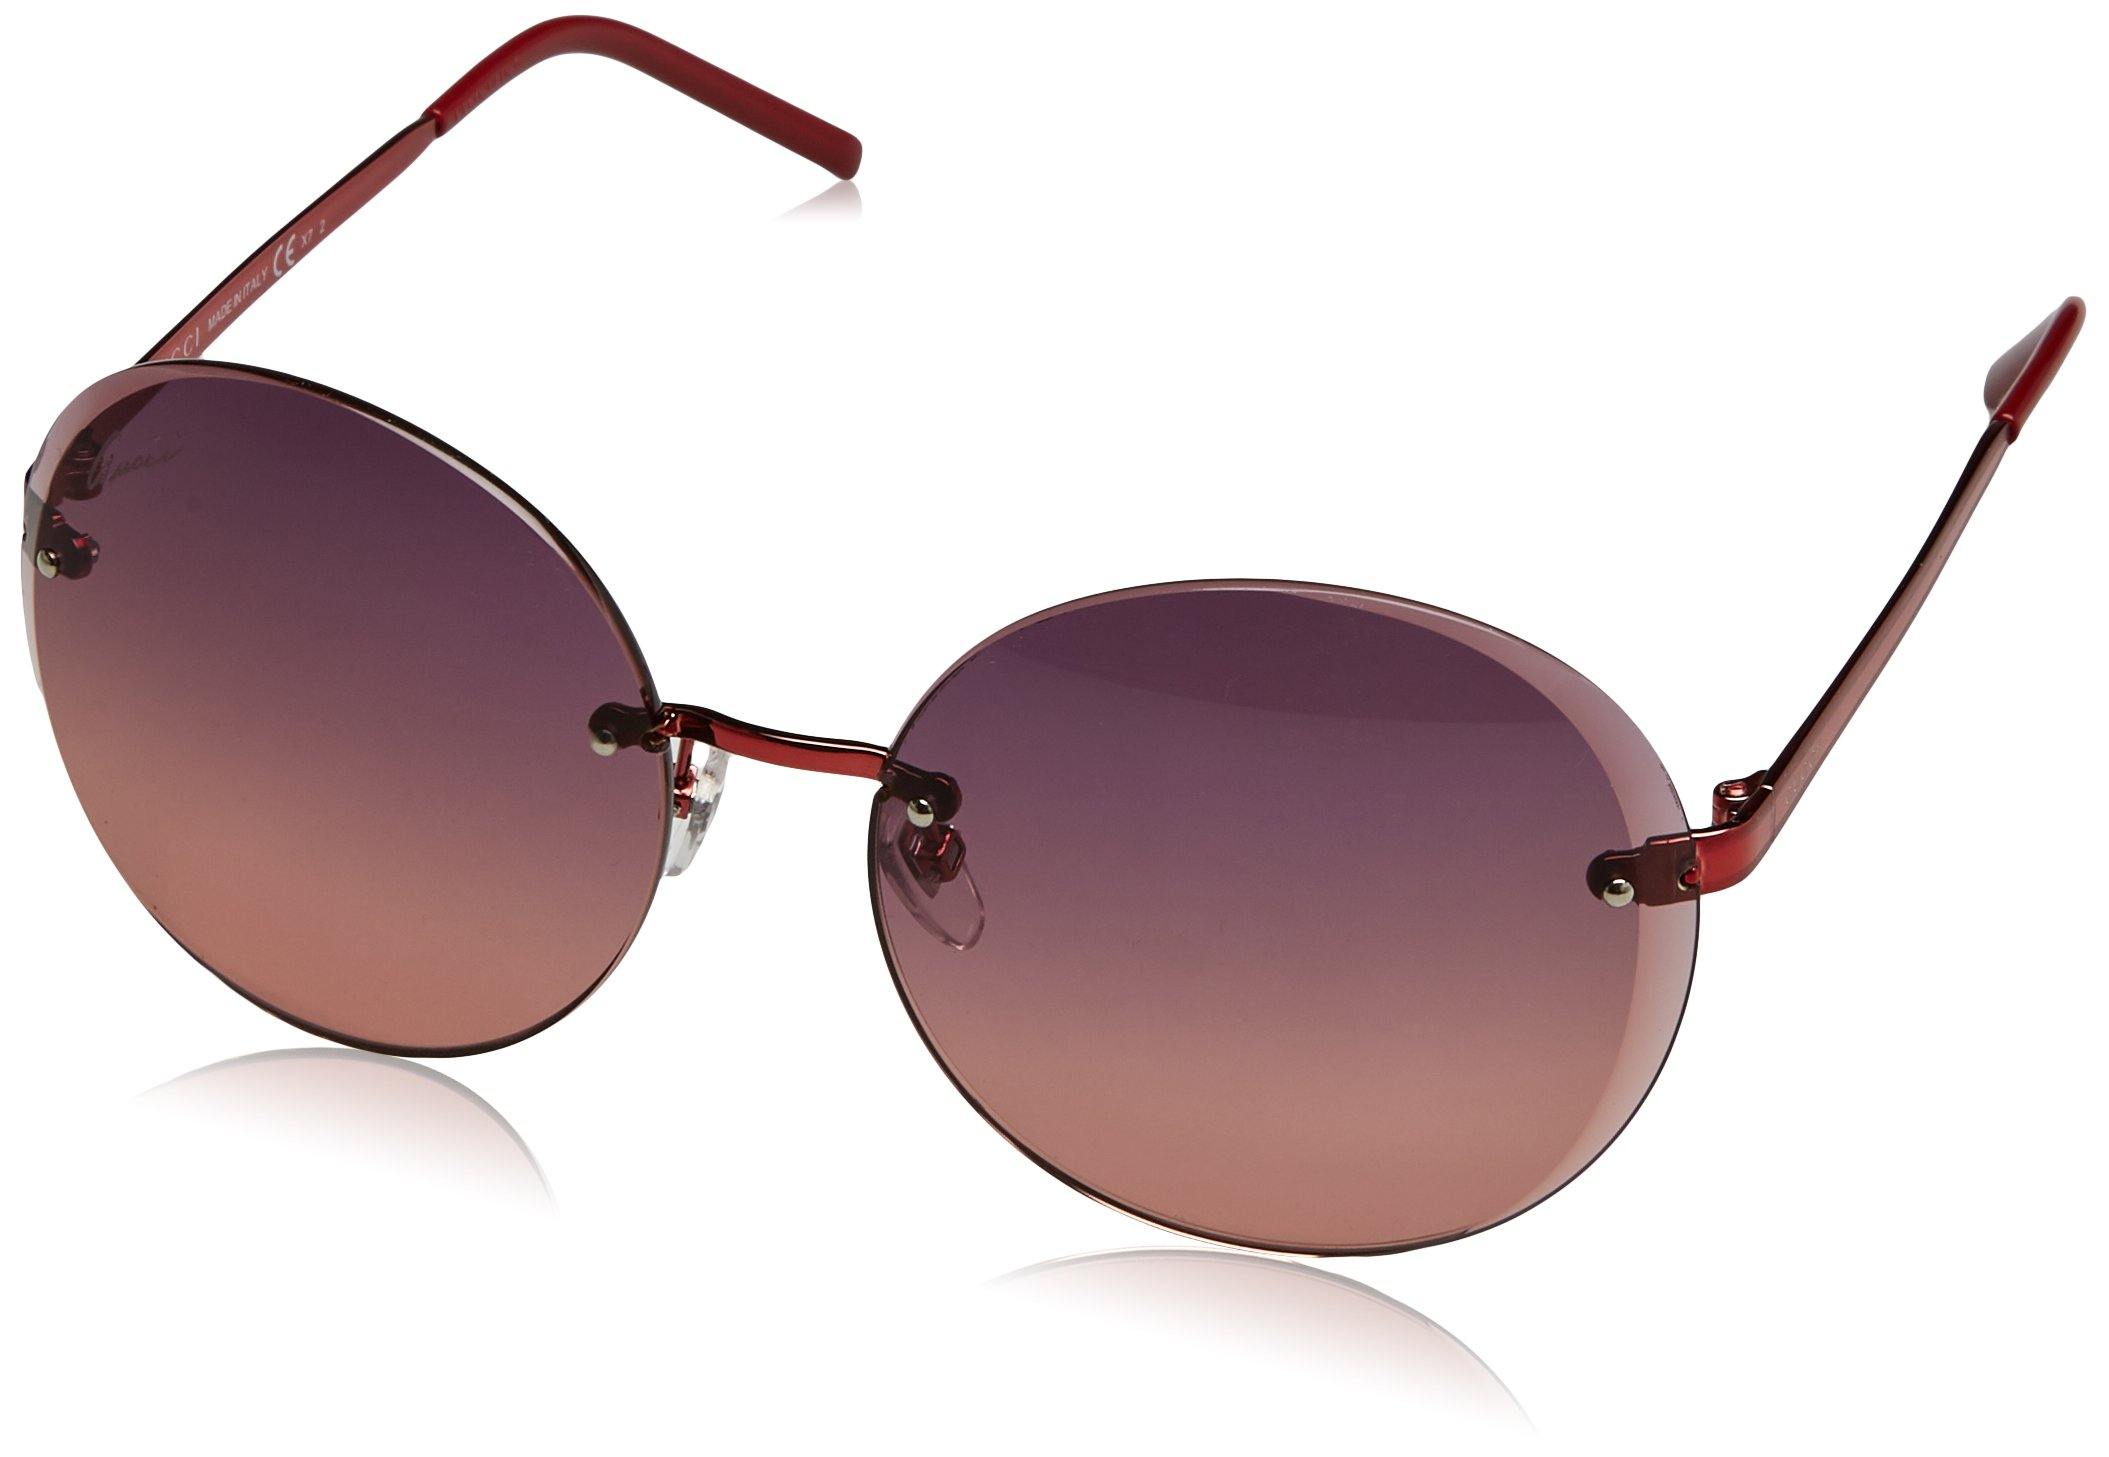 Gucci GG4247/S Sunglasses-0OMR Shiny Red (PC Red Gradient Lens)-59mm